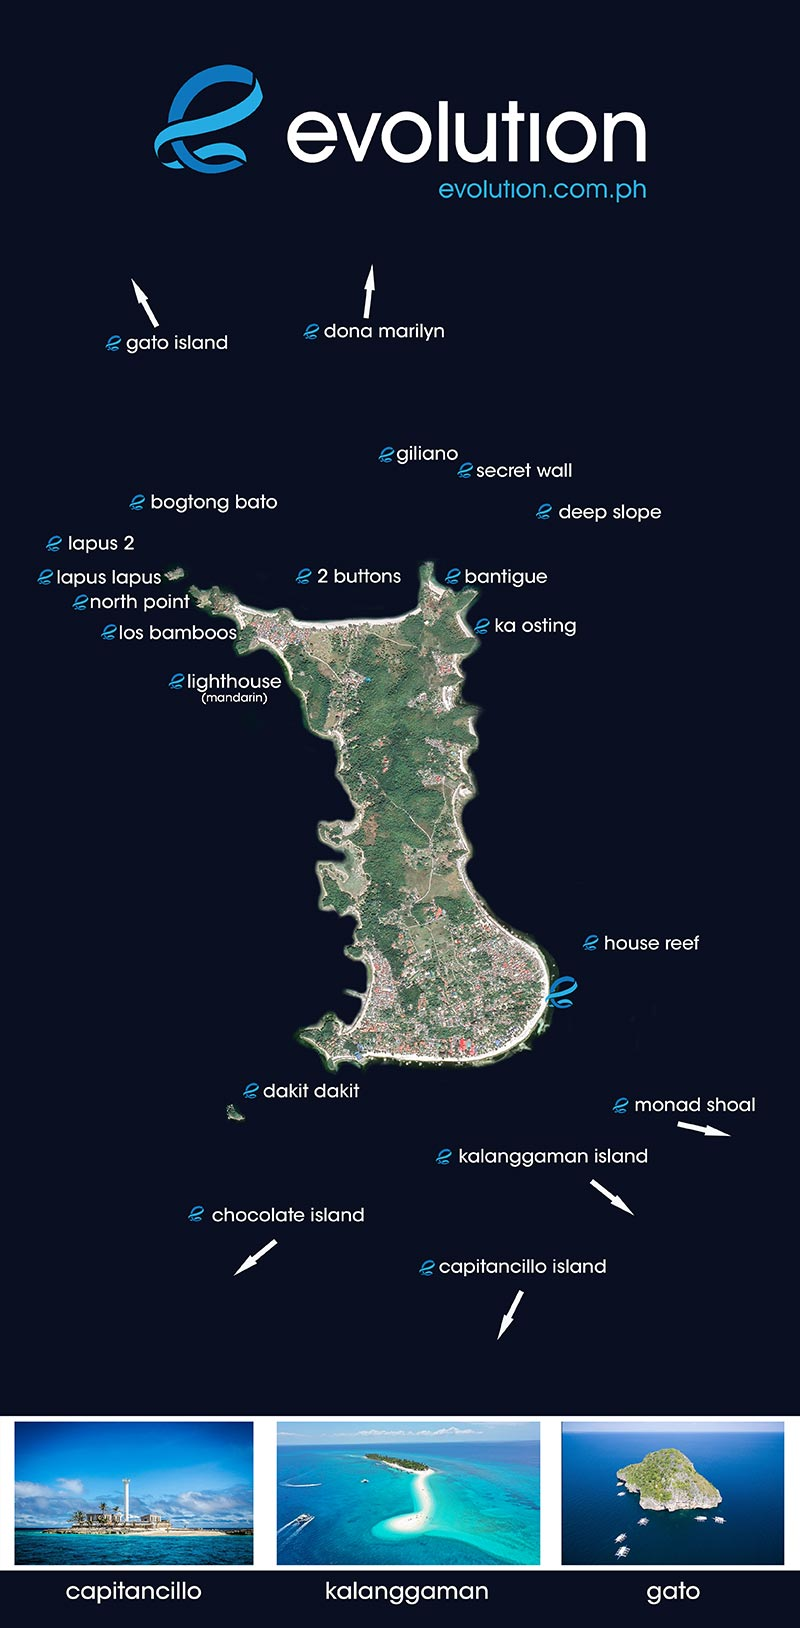 Malapascua dive sites, Philippines